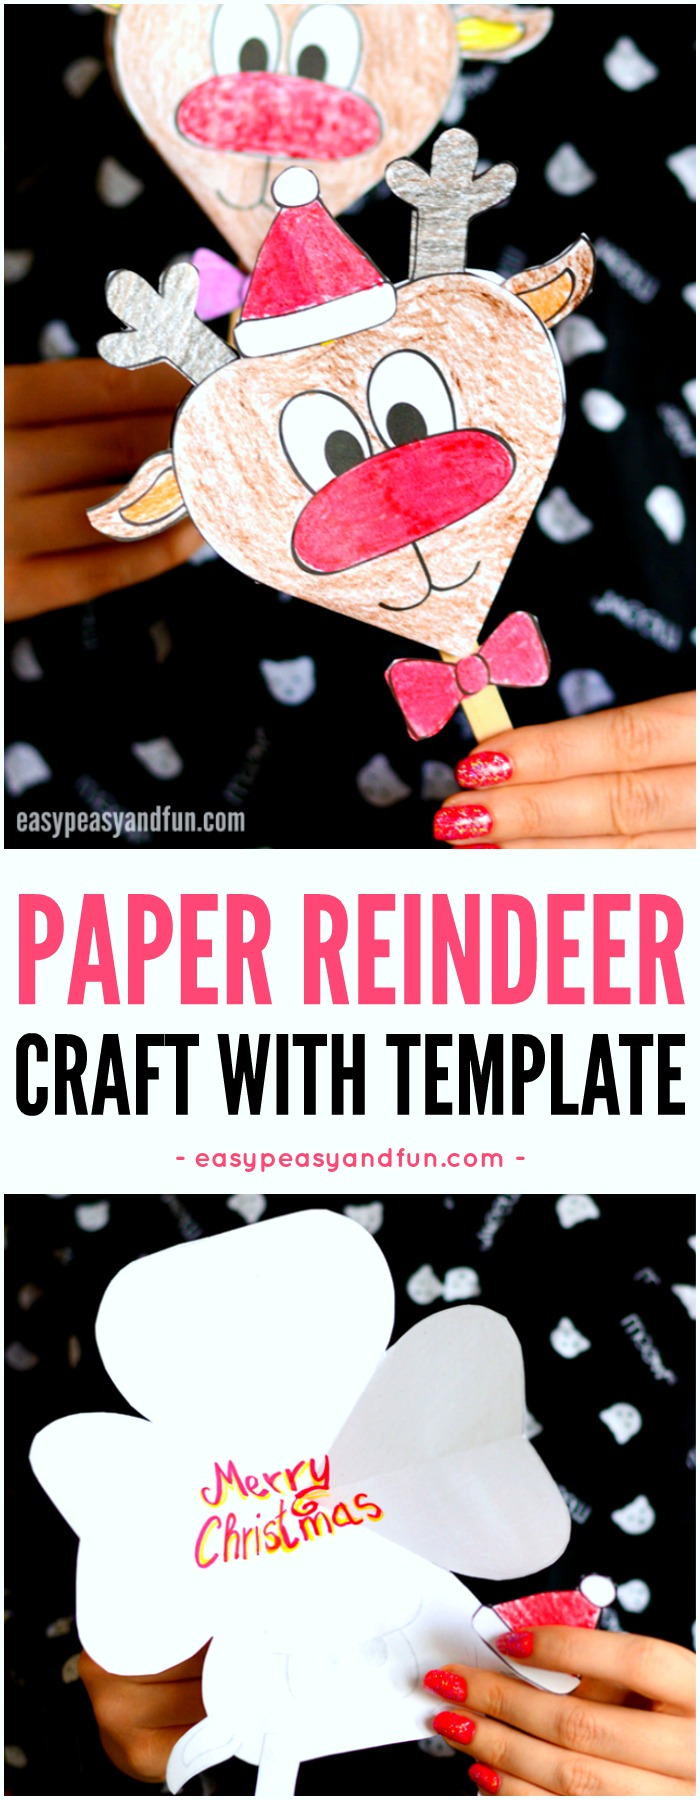 Paper Reindeer Craft With Printable Template for Kids to Make. Super fun Christmas paper activity for kids.